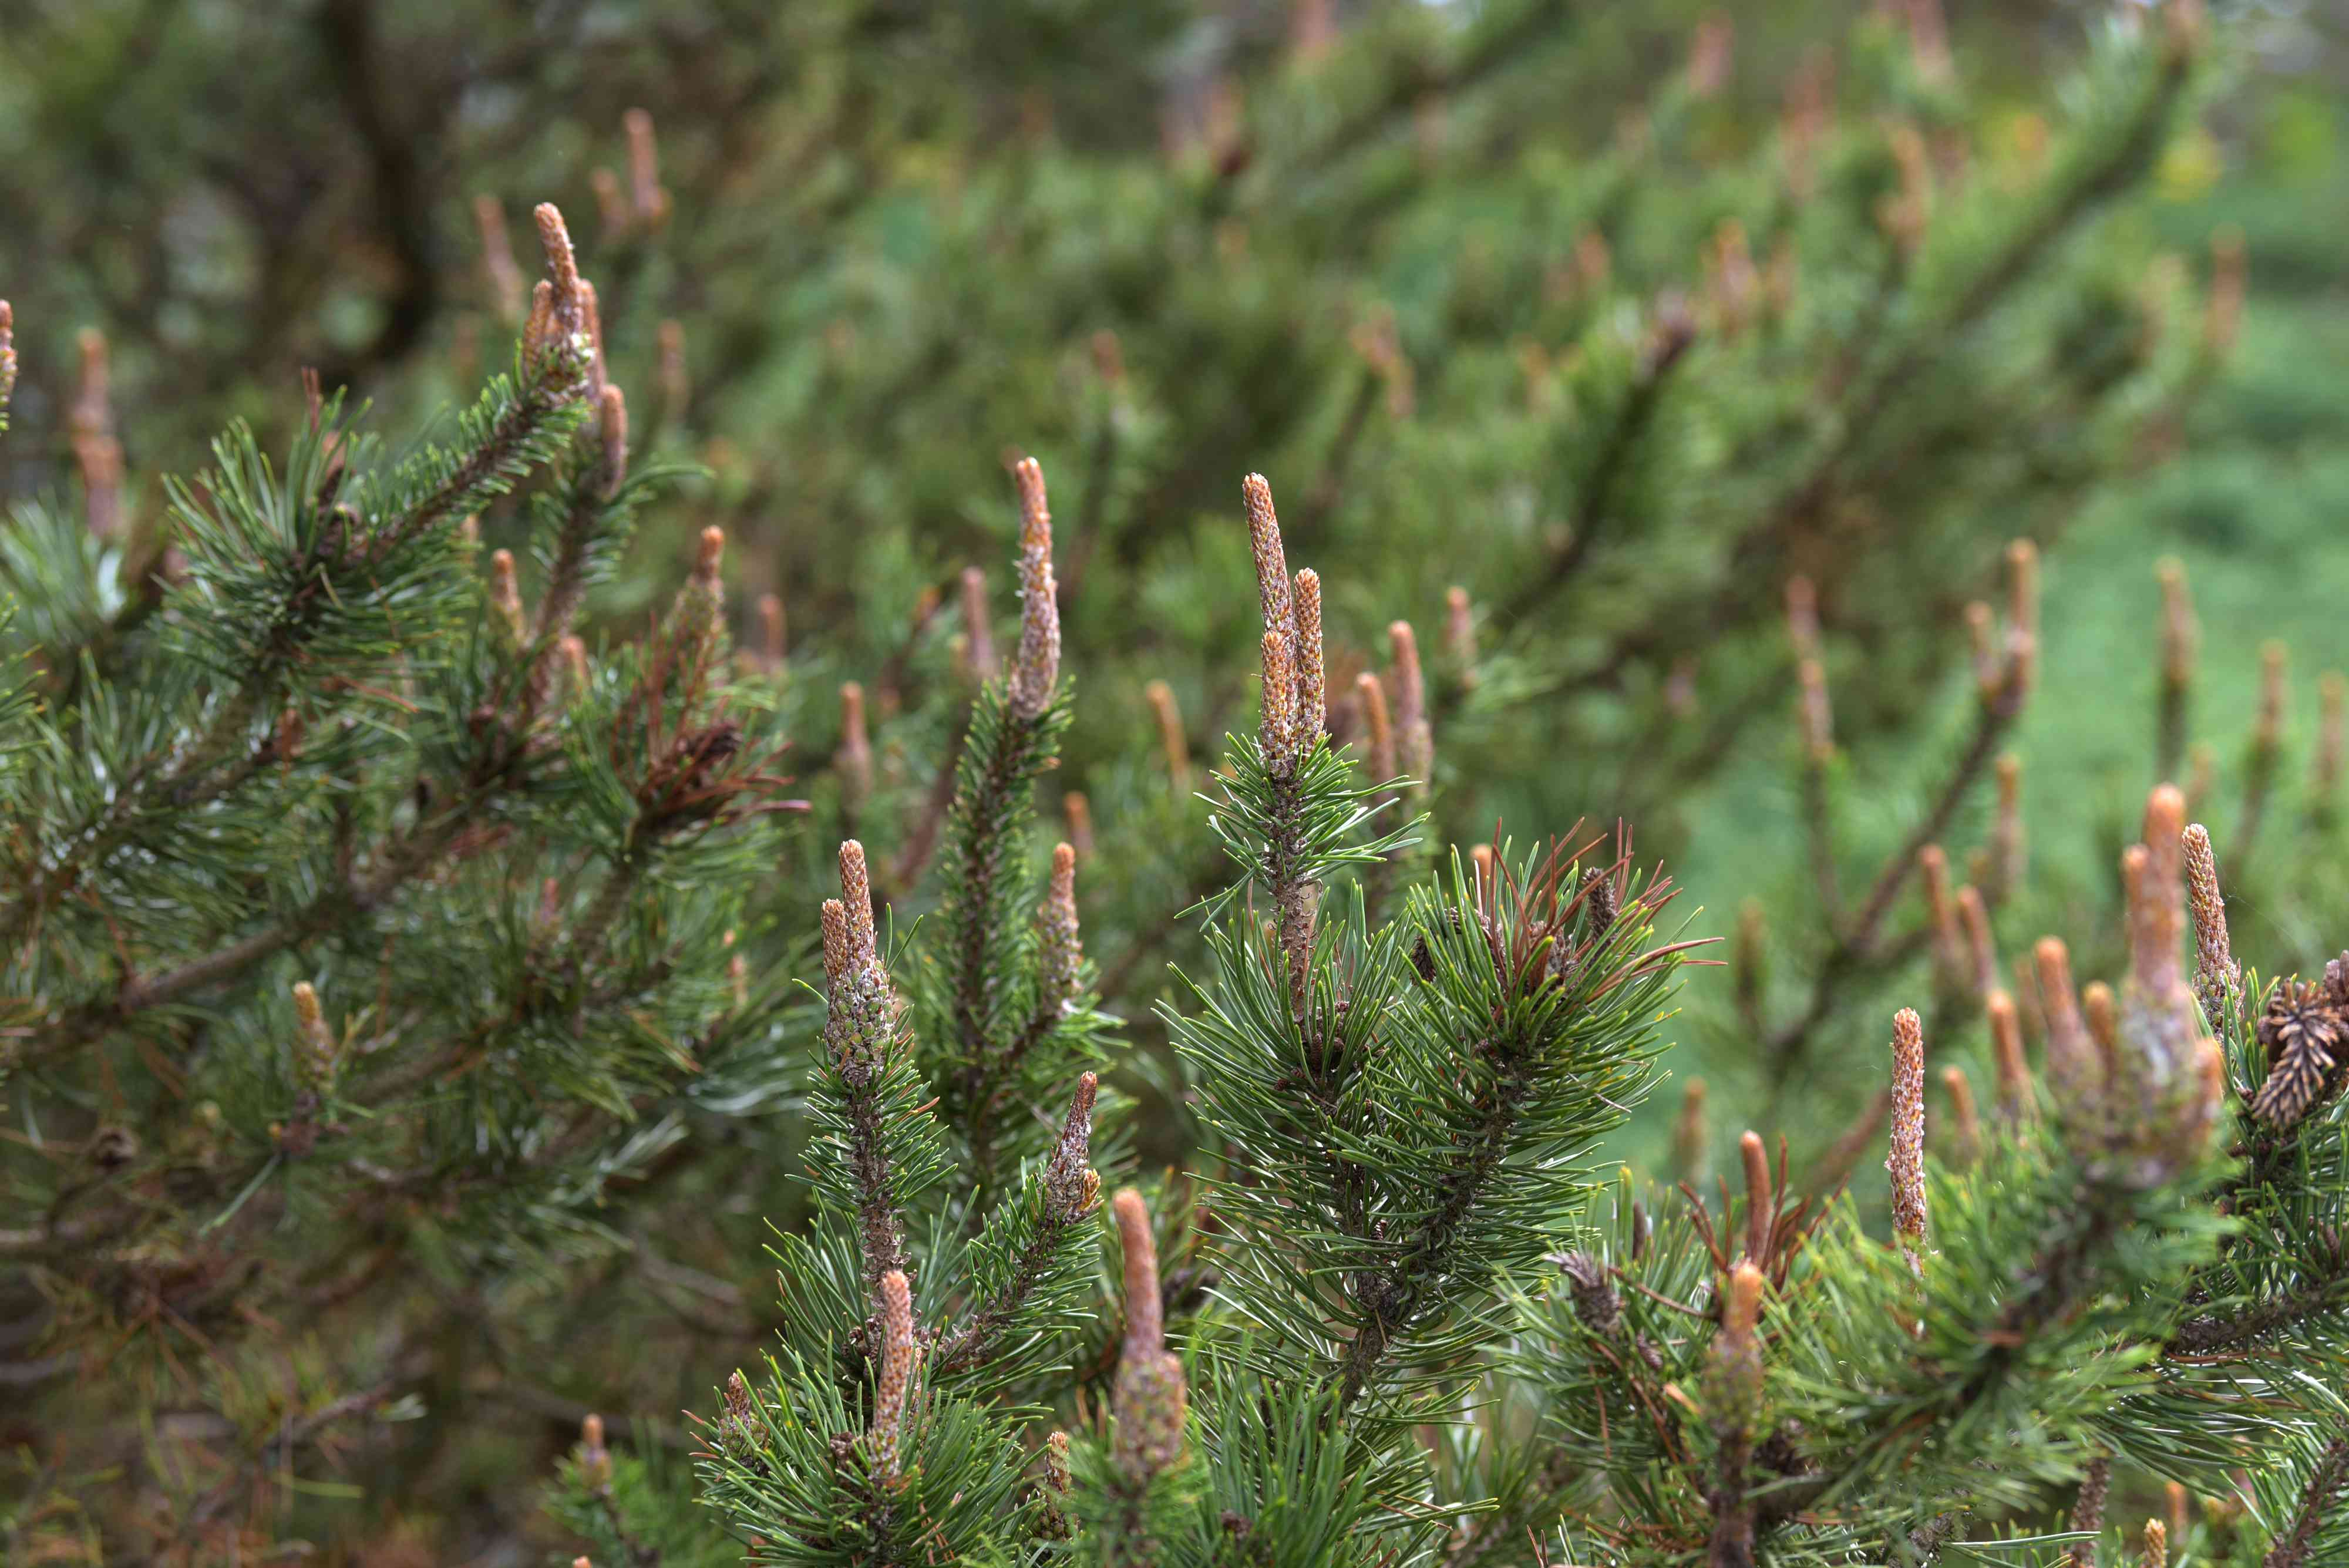 Lodgepole pine tree branches with twisted branches and long, thin cones growing upwards